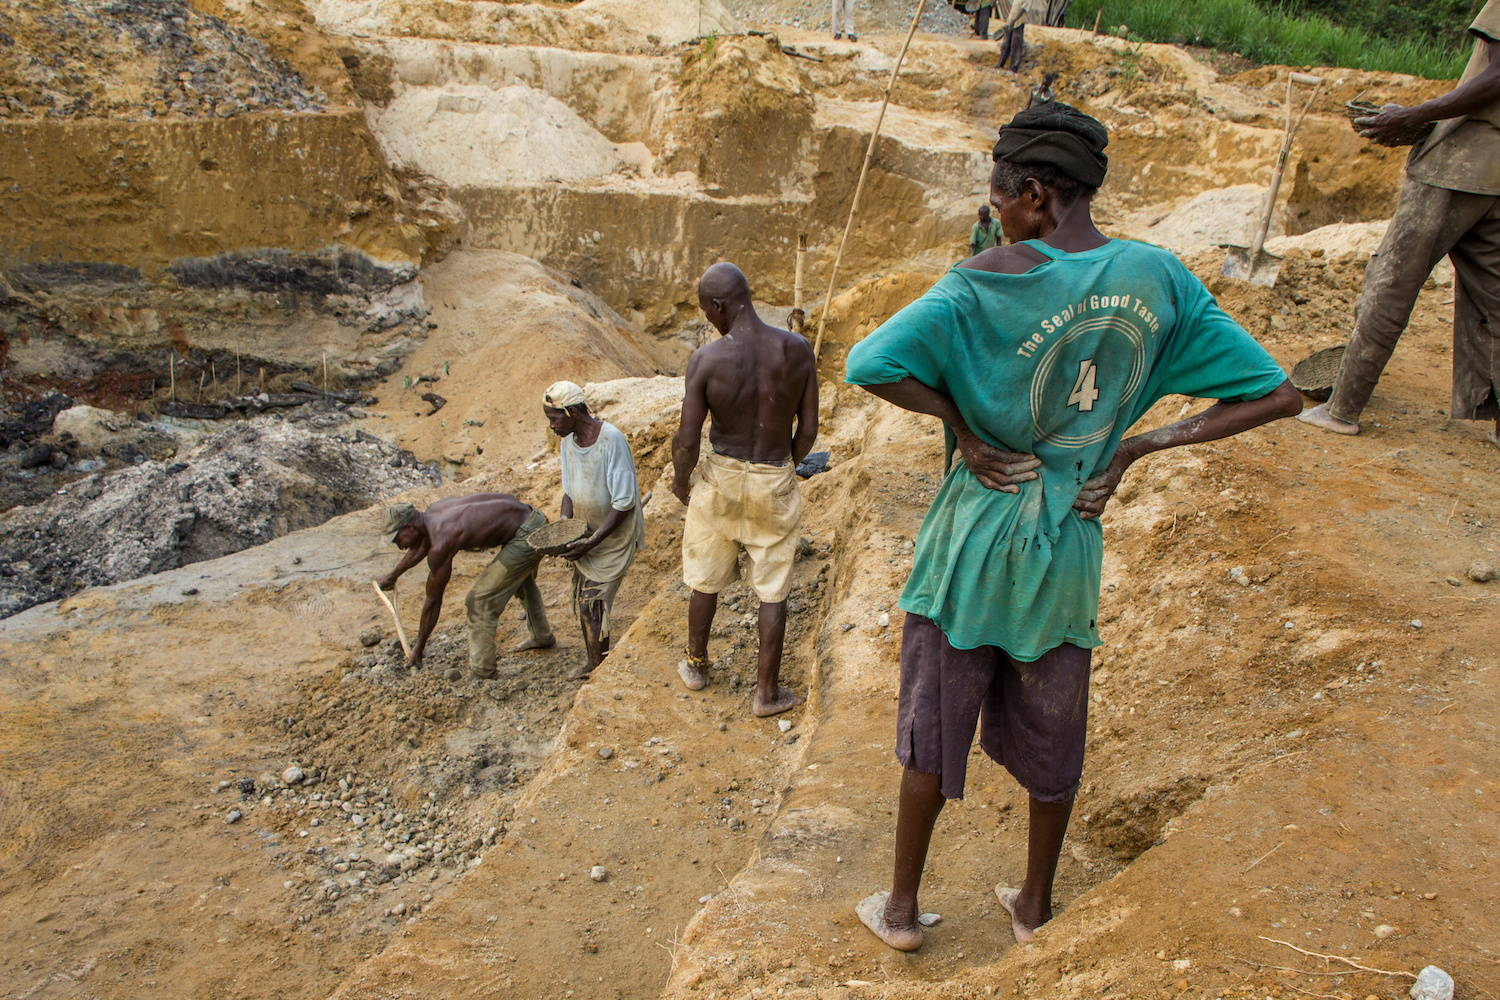 People in Africa digging at conflict diamond mine